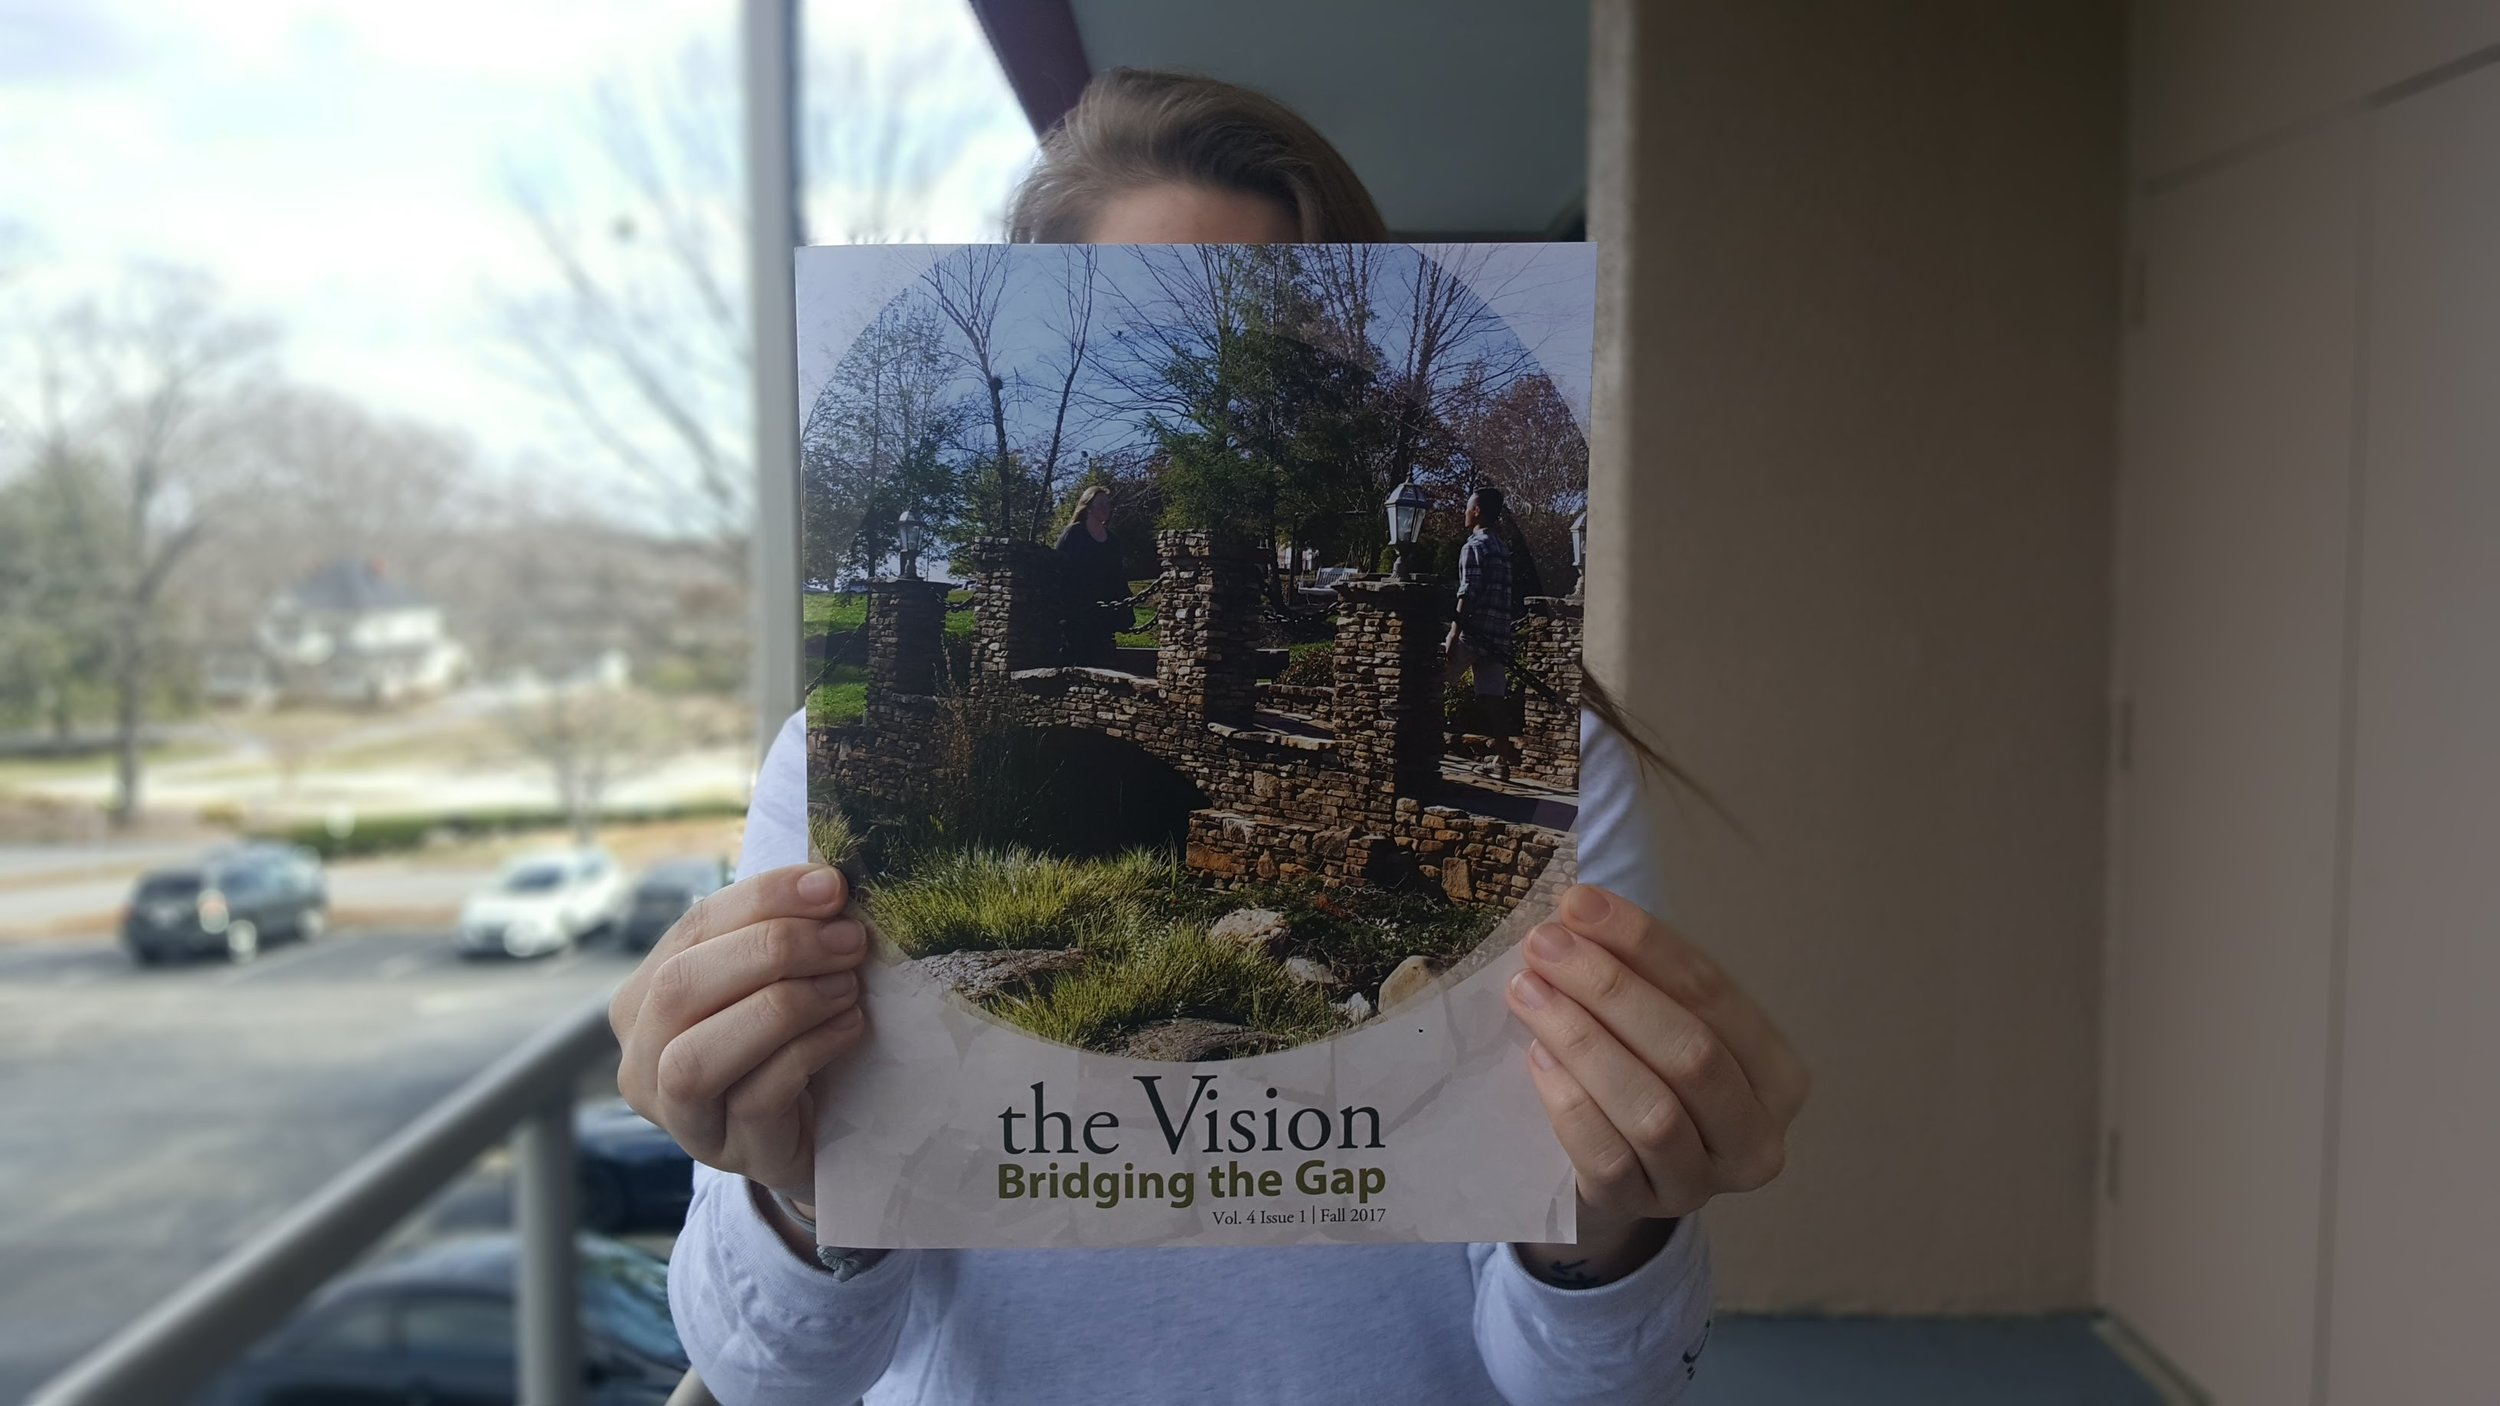 Volume 4, Issue 1 of the Vision magazine